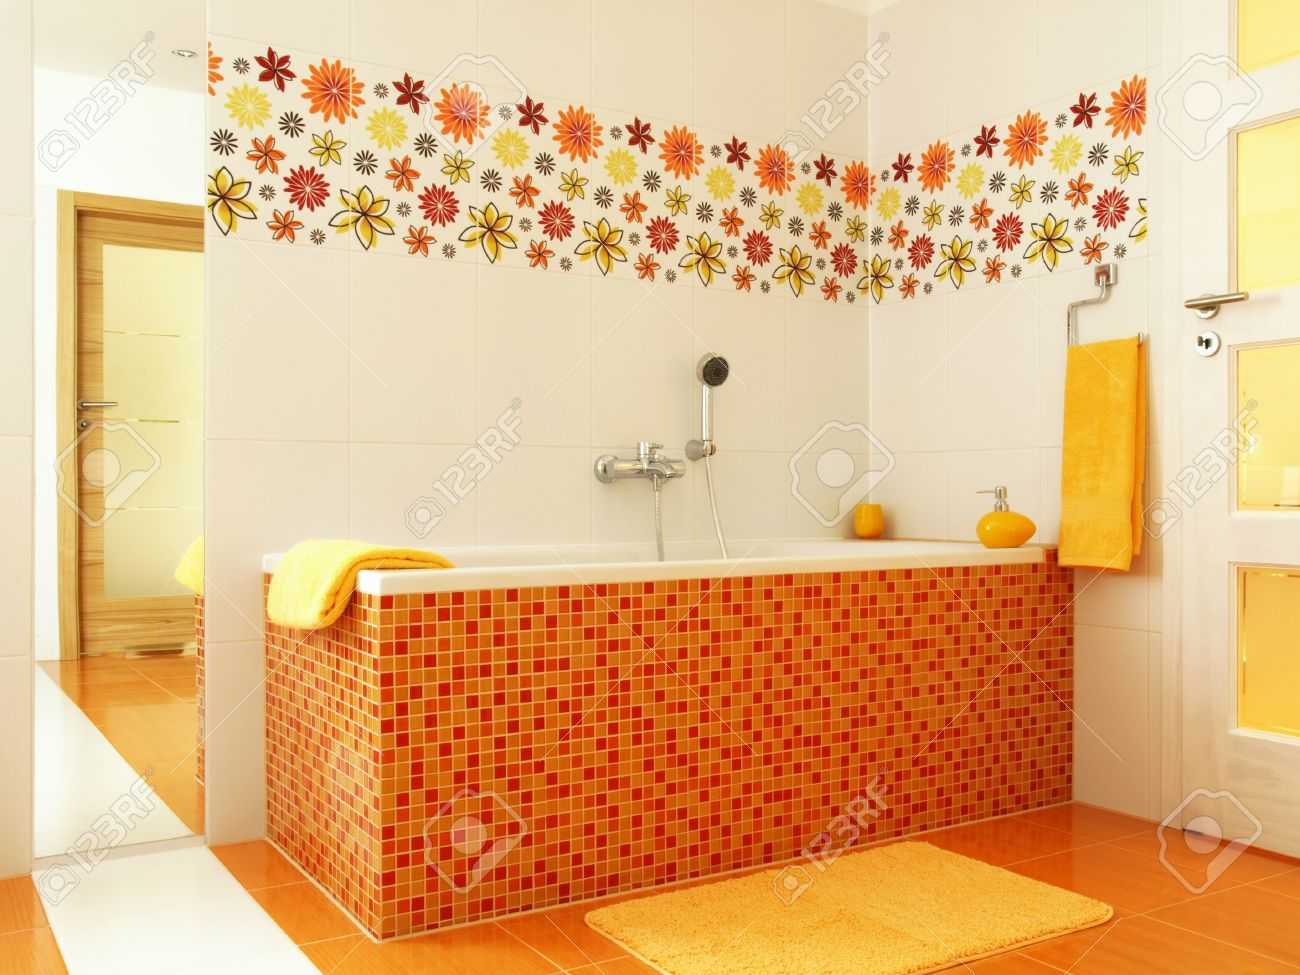 Badezimmer Gelb Stock Photo